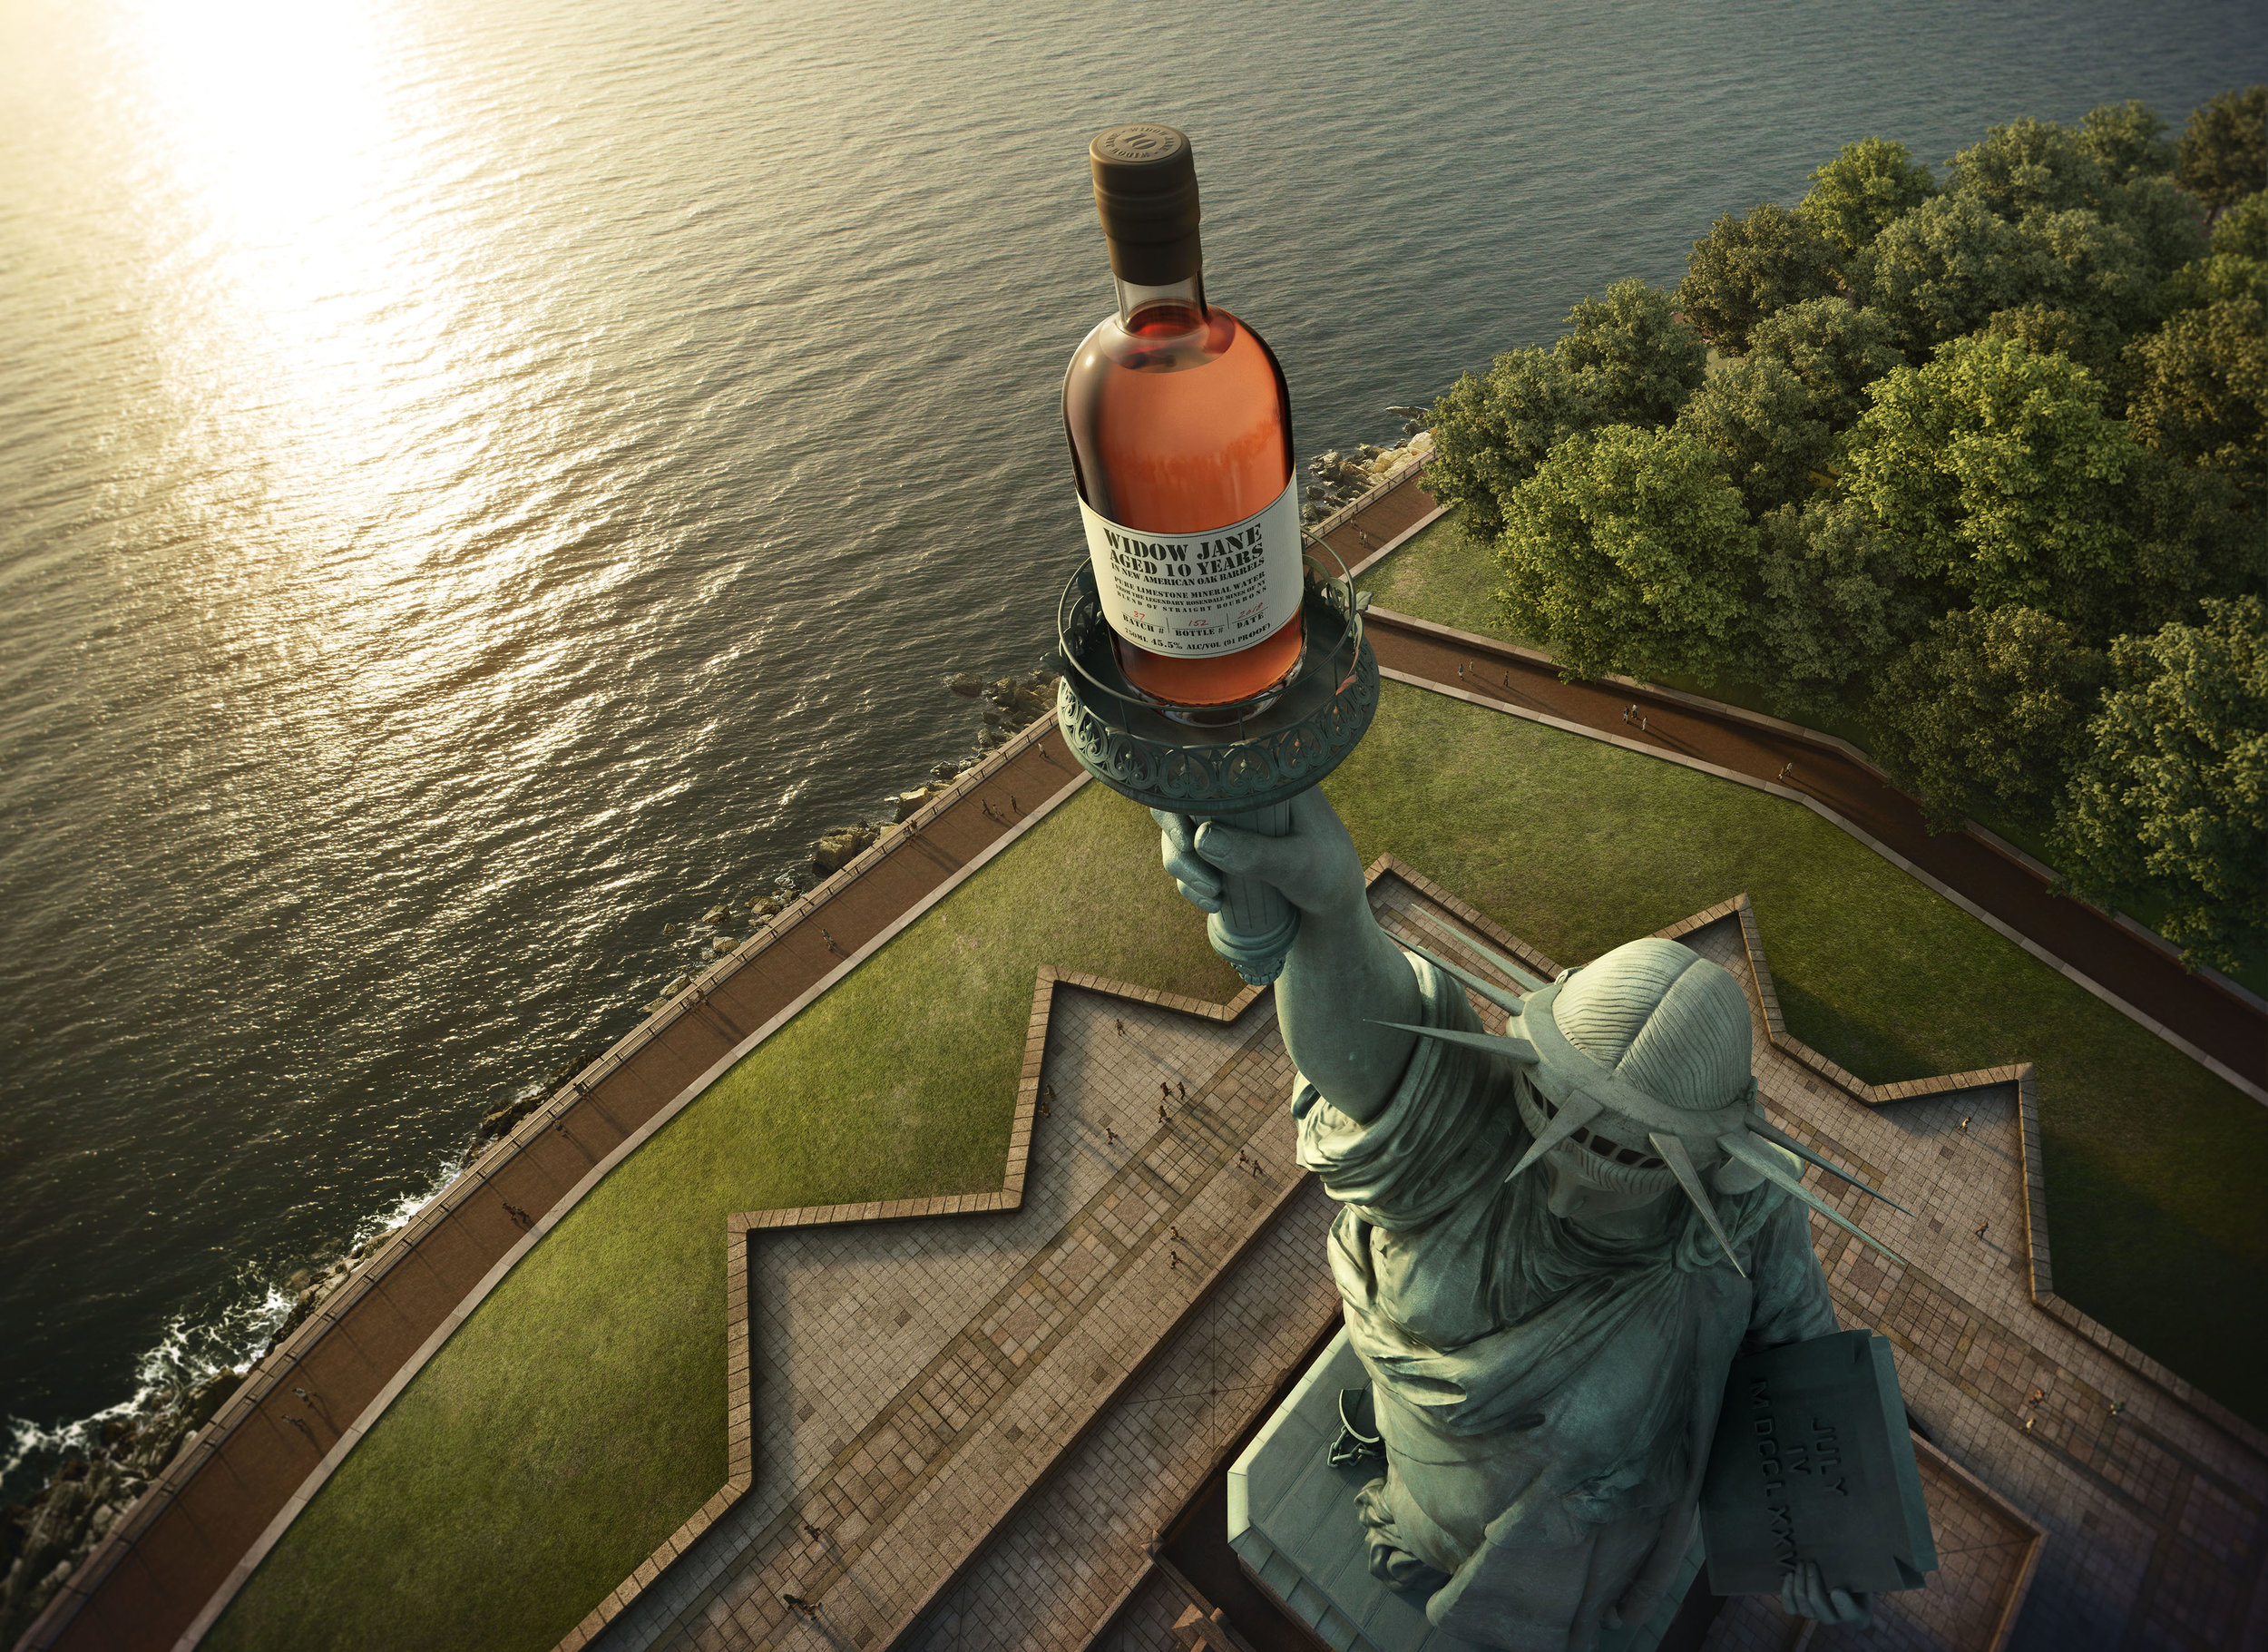 AGENCY-JAC CREATIVE > ART DIRECTOR-JACK JANKOWSKI > PHOTOGRAPHY-(WATER) WAYNE CALABRESE > CLIENT-WIDOW JANE DISTILLERY  CGI AND CREATIVE IMAGING MIX